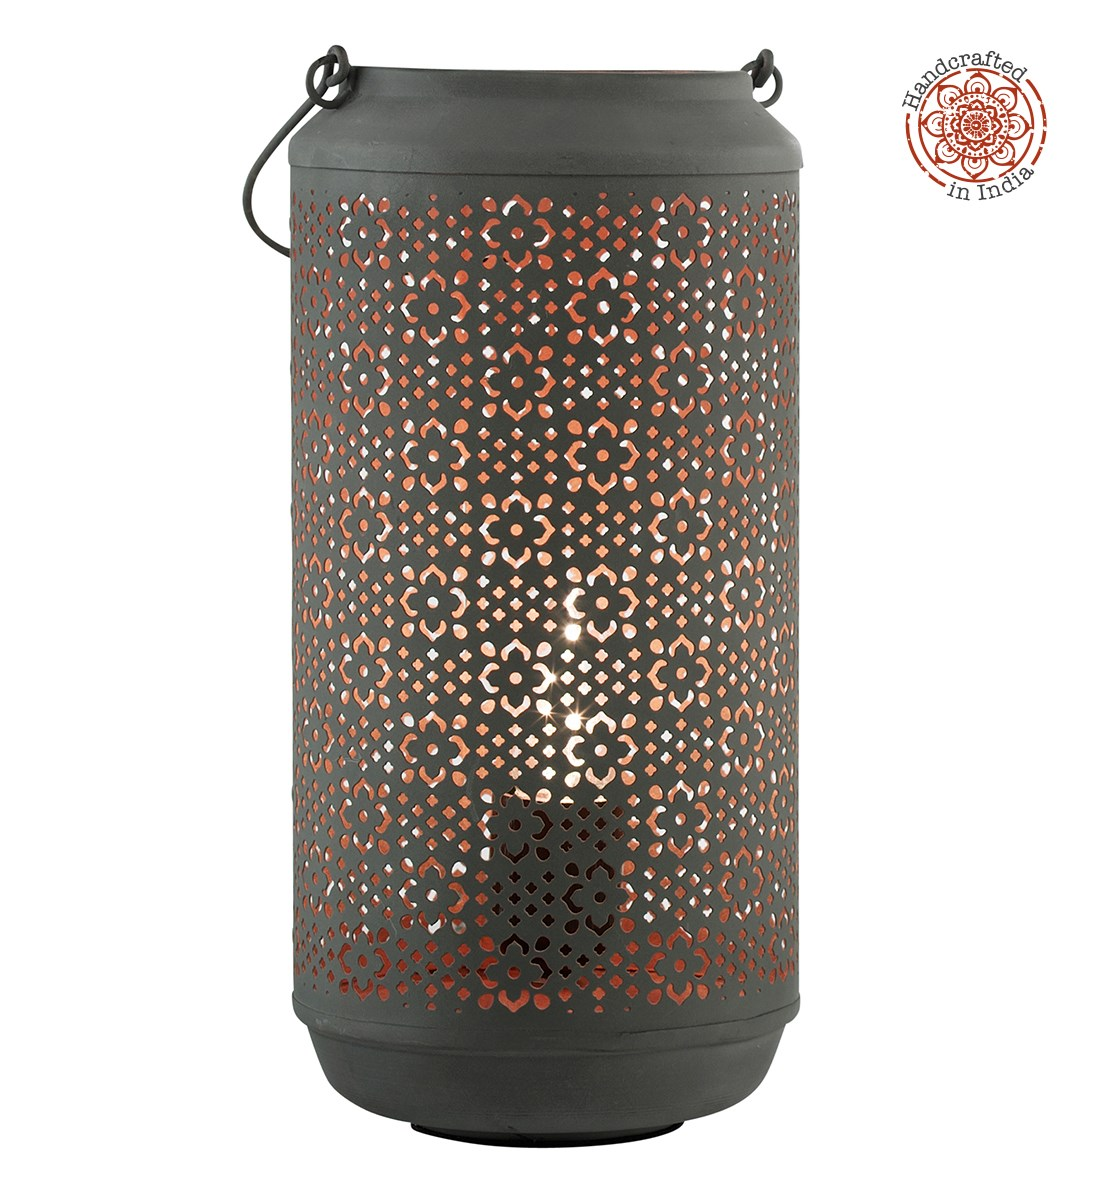 Nori Table Lamp Handcrafted Patterned Lantern